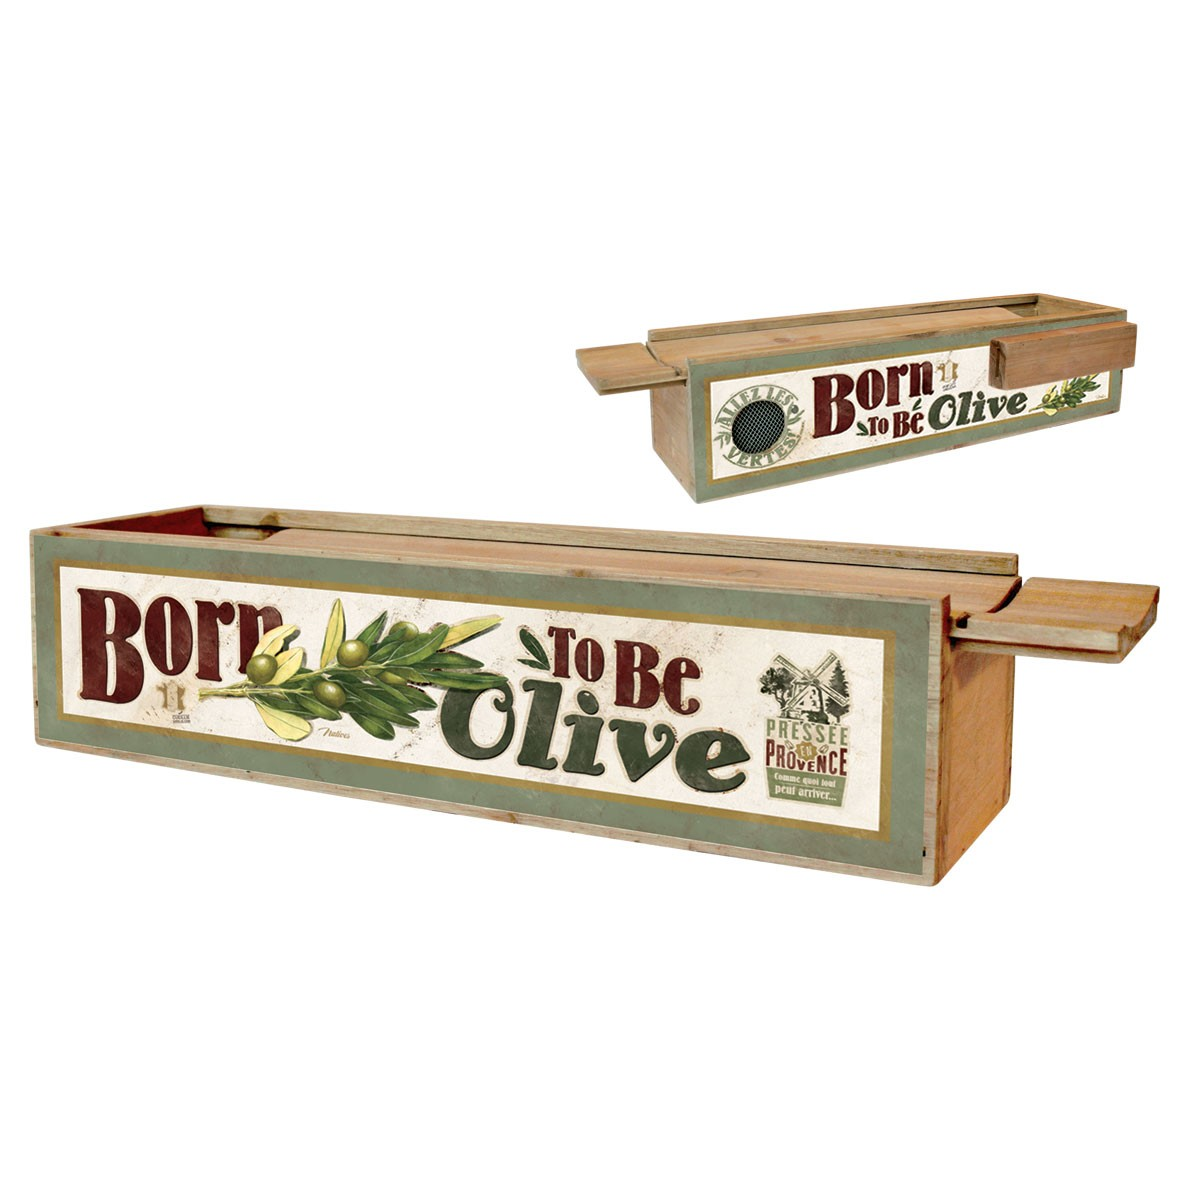 Born to be olive